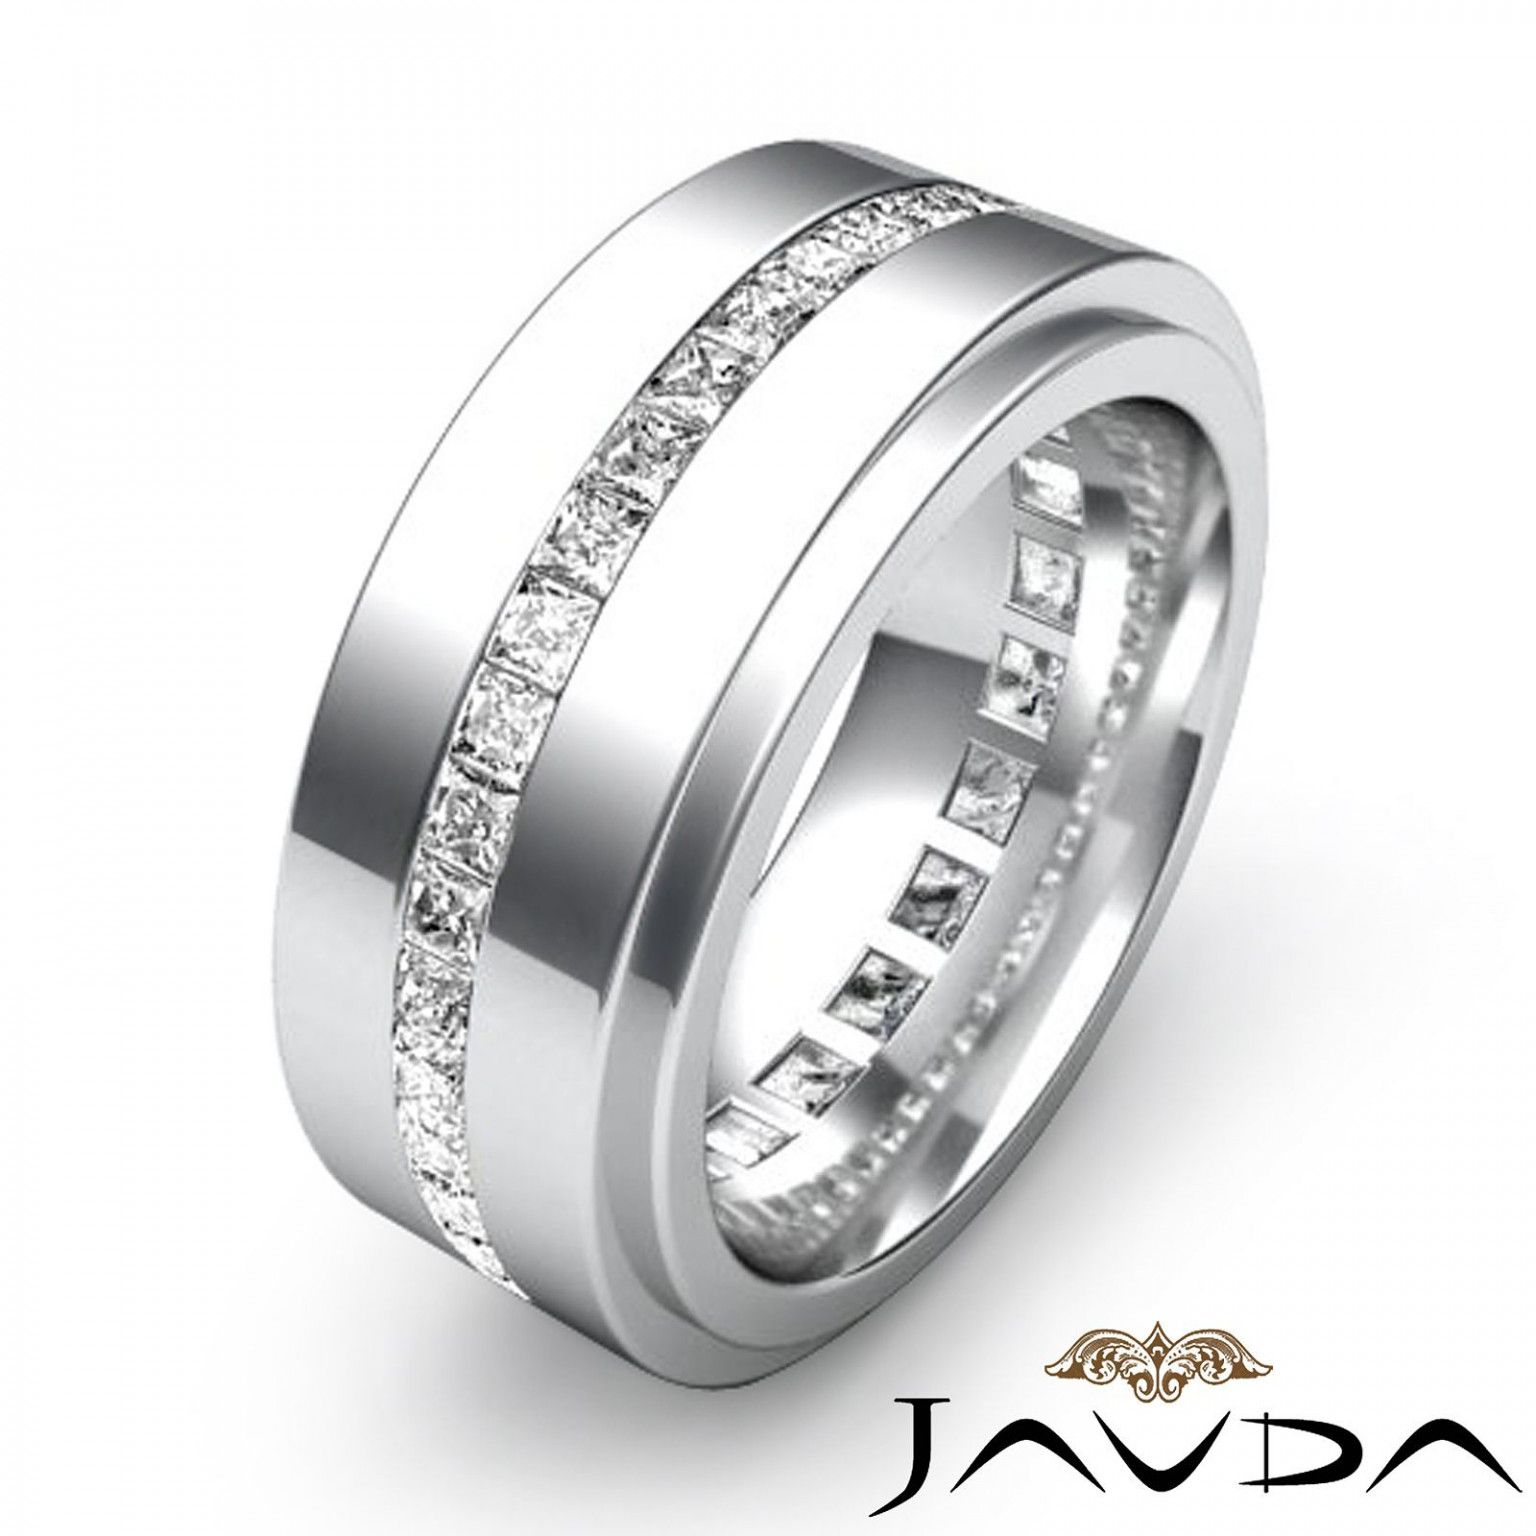 Design Your Own Mens Wedding Band Can Be Done In Some Ways Ringsband Com